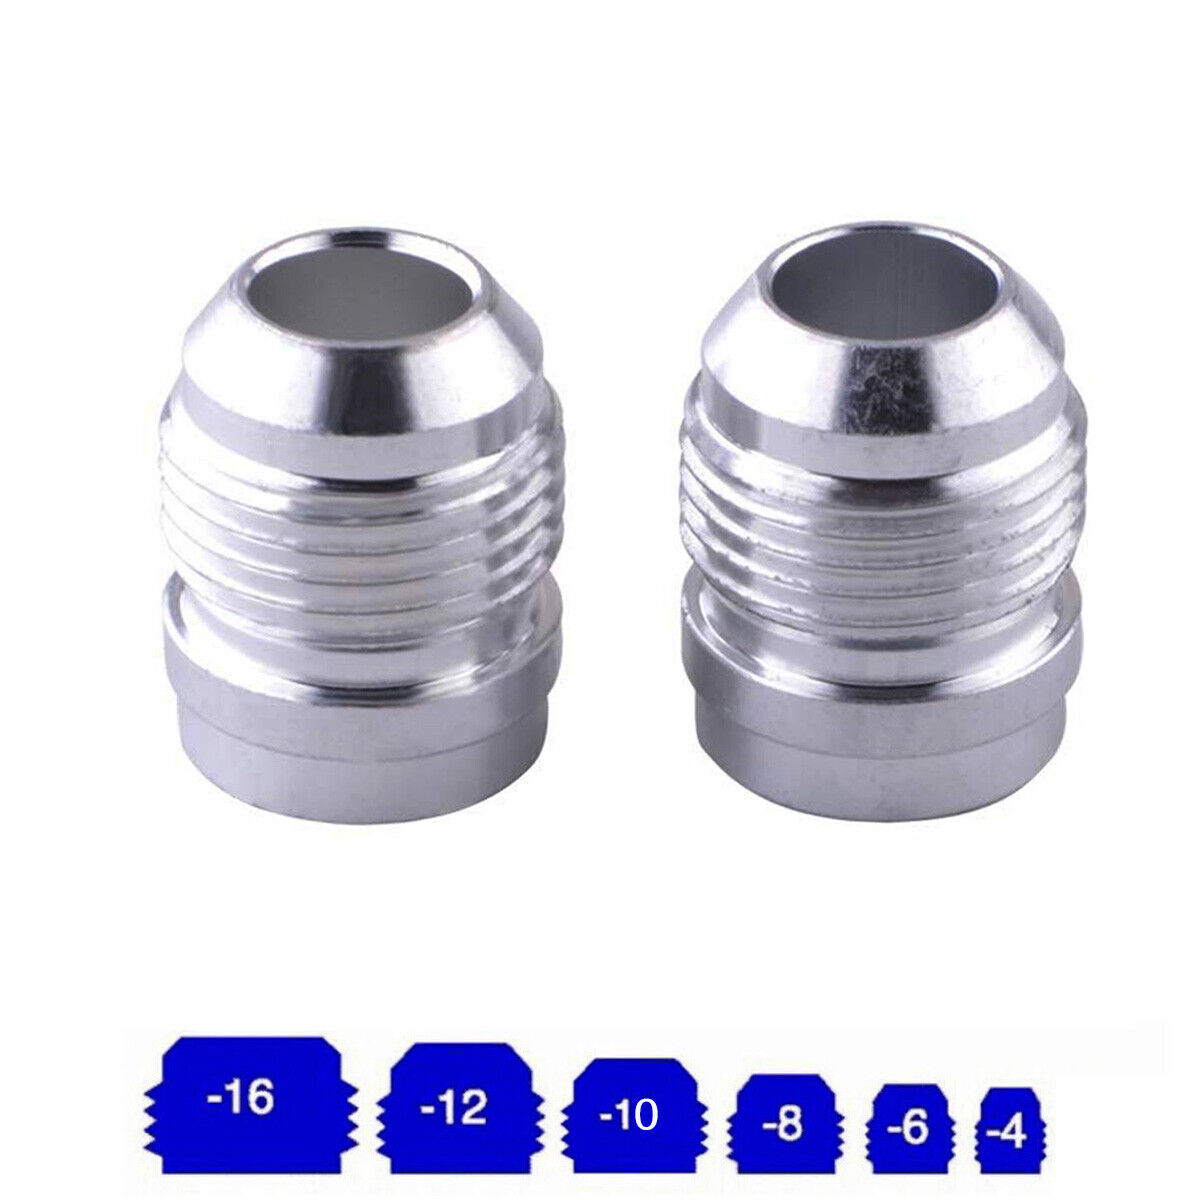 Straight -6AN Flare Male to 1/2NPT Pipe Adapter Fitting 6